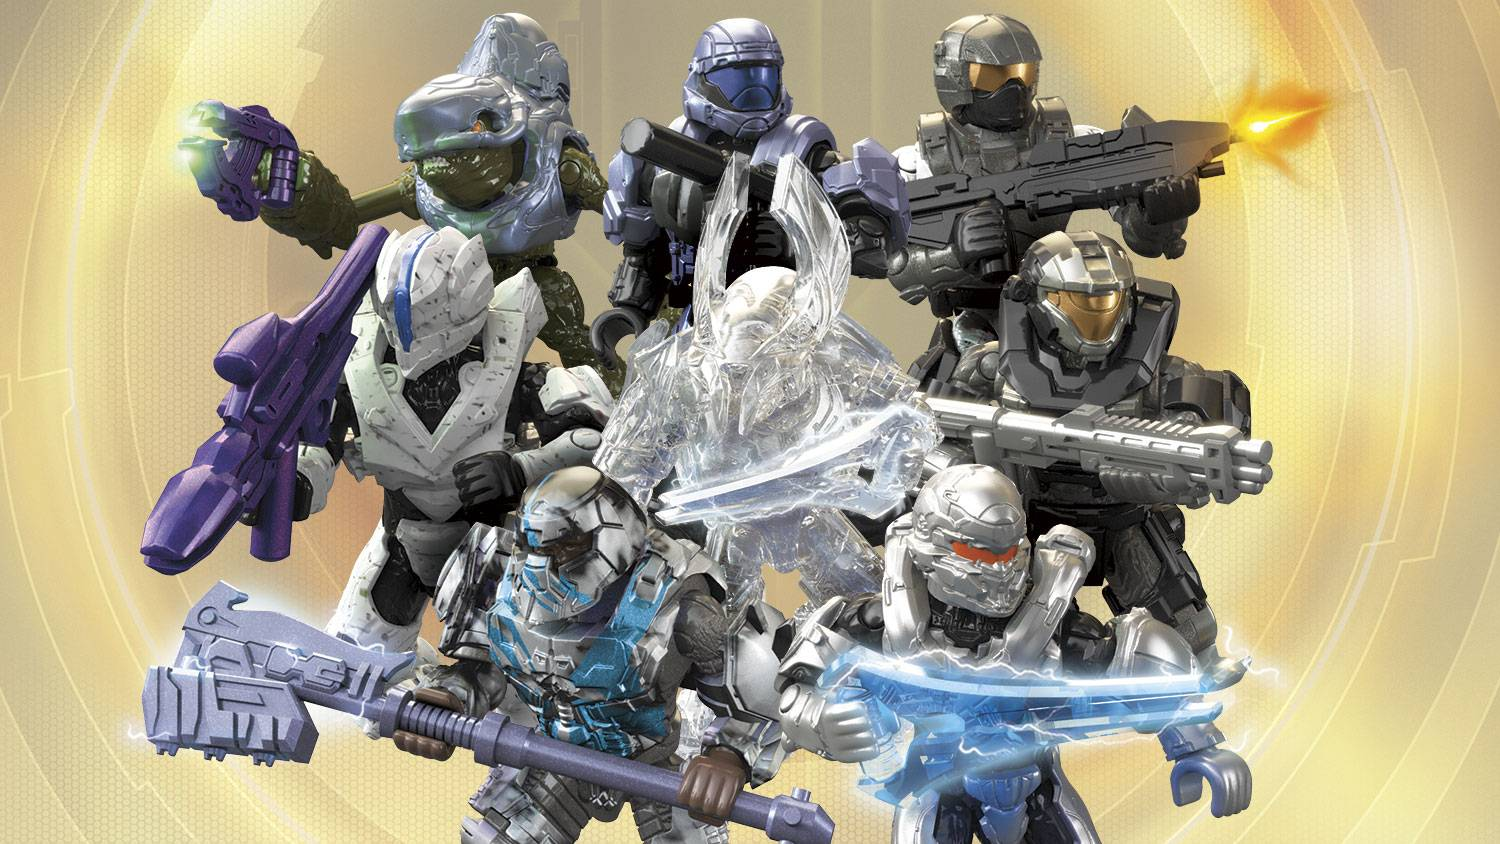 Toys & Hobbies Building Toys MEGA CONSTRUX Halo CNC84 Silver *BANISHED BRUTE* Stormbound Series